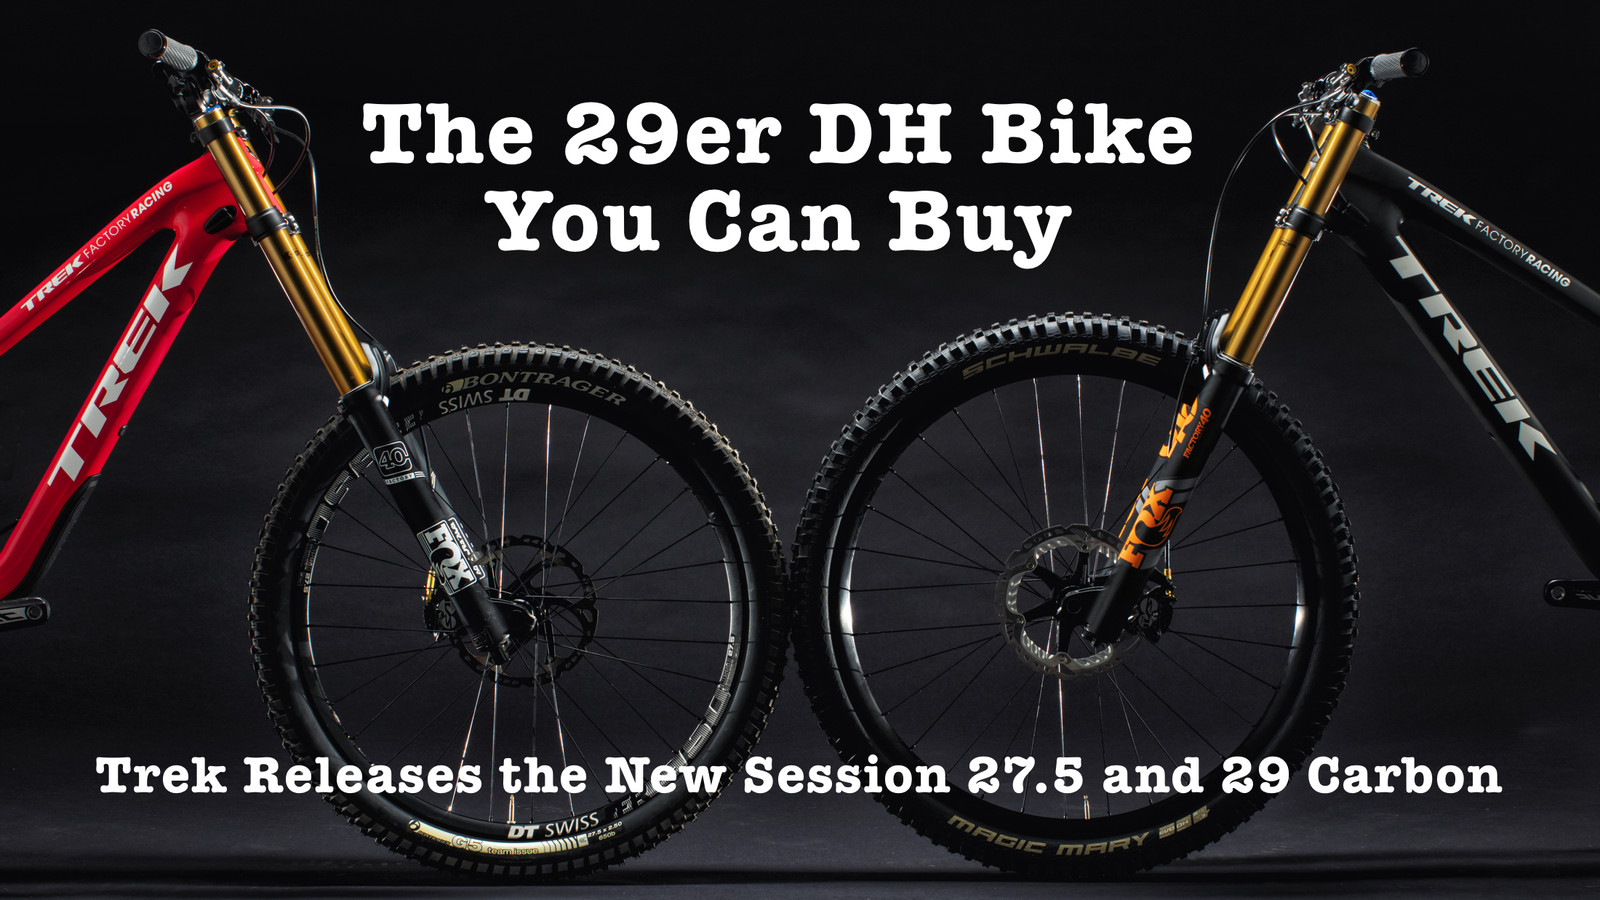 You Can Have a 29er Downhill Bike - Trek Introduces the New Session 27.5 and Session 29